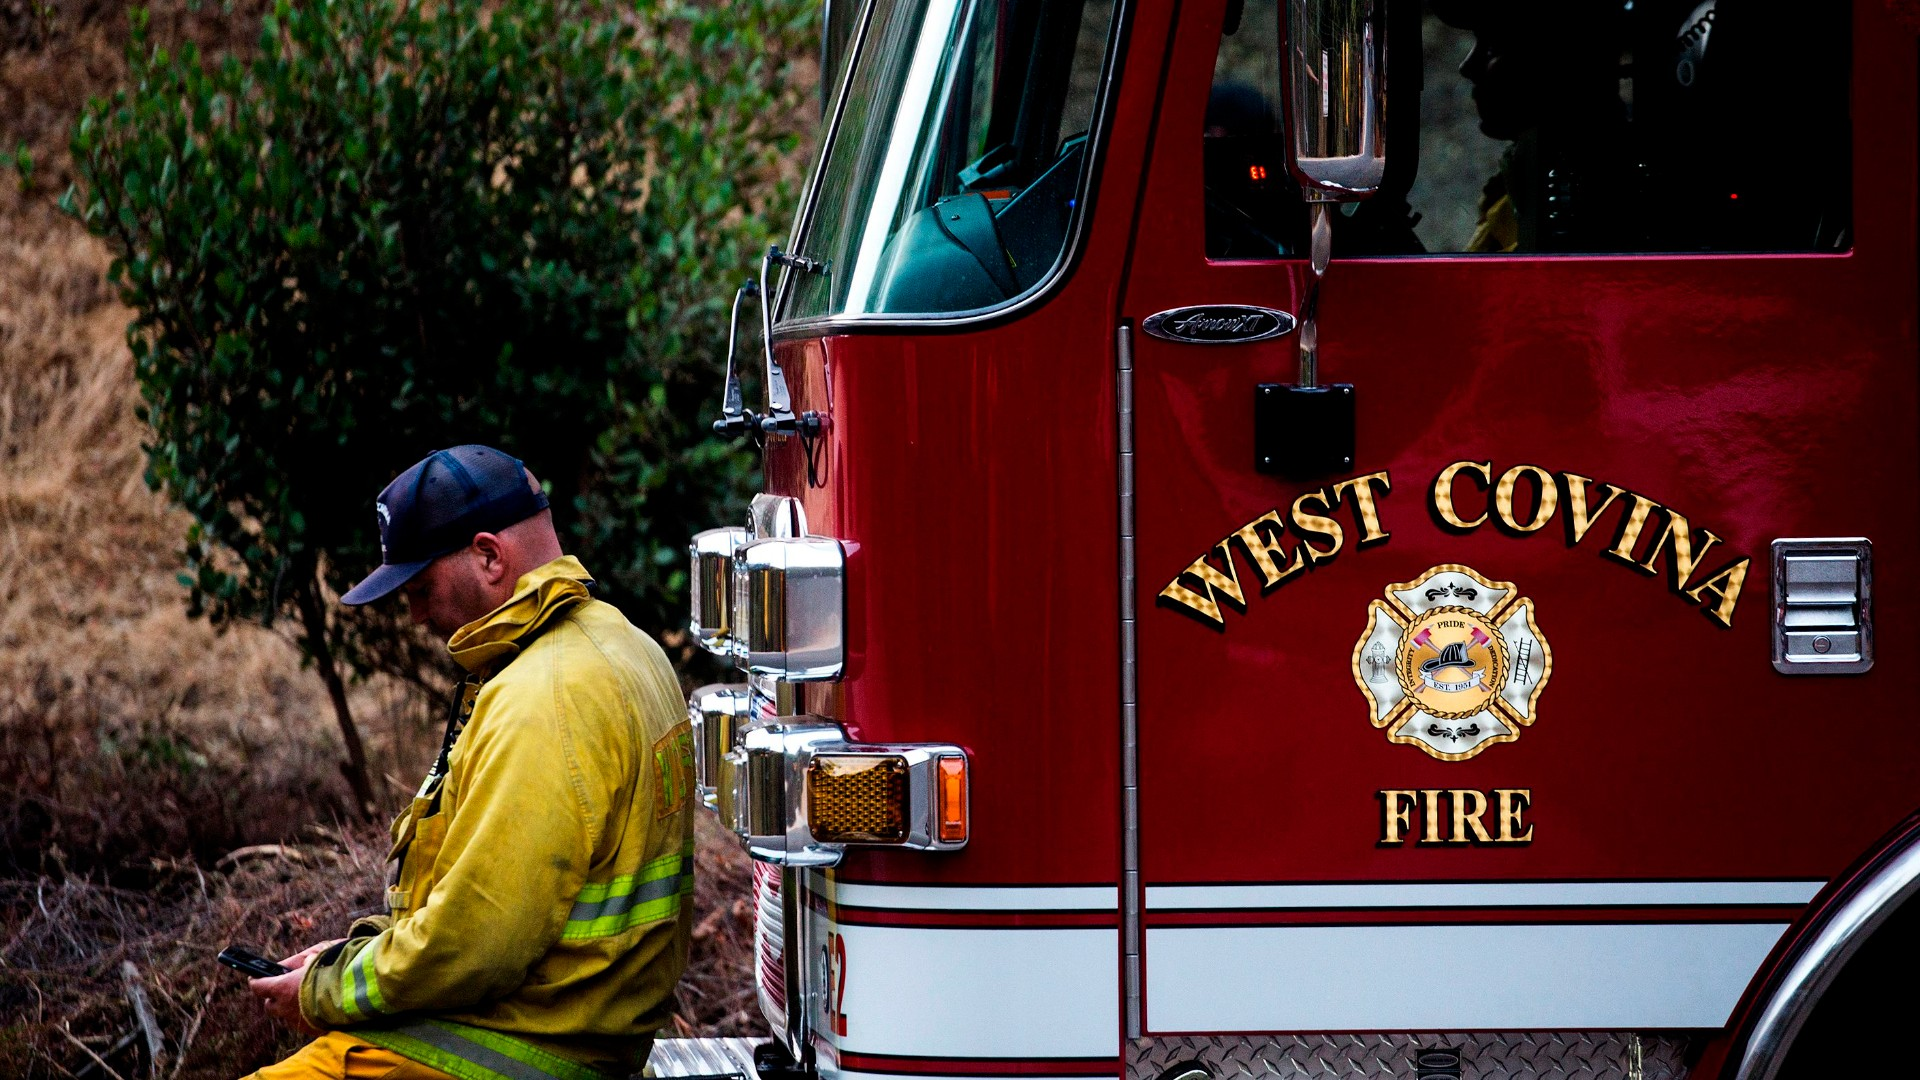 West Covina firefighters rest on their fire truck as the Bobcat Fire burns in the San Gabriel mountains above Monrovia on September 16, 2020. (RINGO CHIU/AFP via Getty Images)